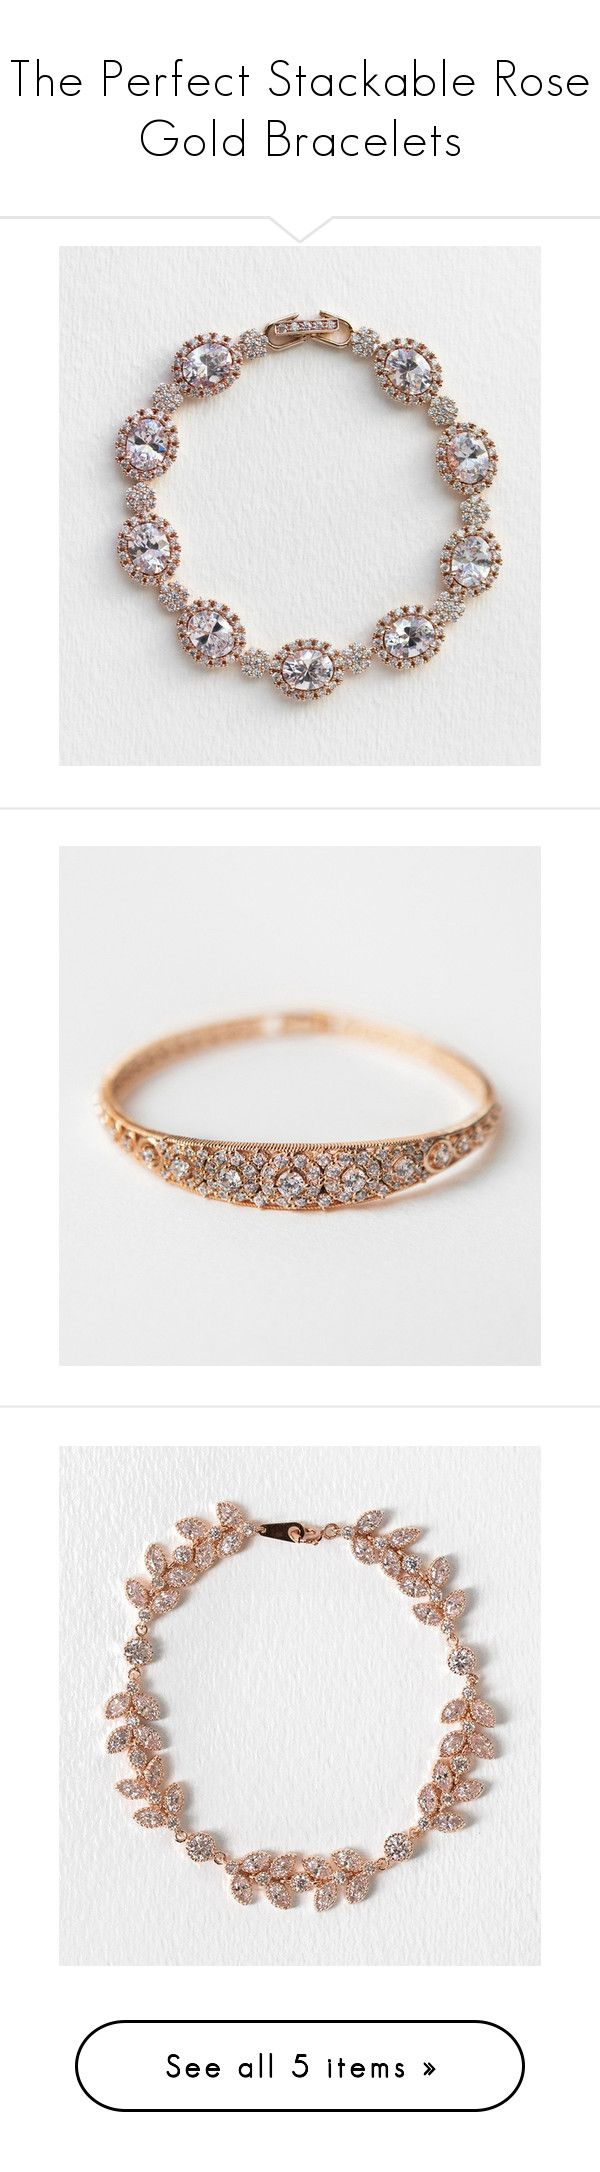 The Perfect Stackable Rose Gold Bracelets by Amy O. Bridal on Polyvore featuring vintage inspired bracelets for the one of a kind bride. These classic and timeless bracelets are perfect to pair with any rose gold wedding jewelry set. Let these jewels adorn your wrist while dazzling and sparkling with beautiful unforgettable Cubic Zirconia crystals.